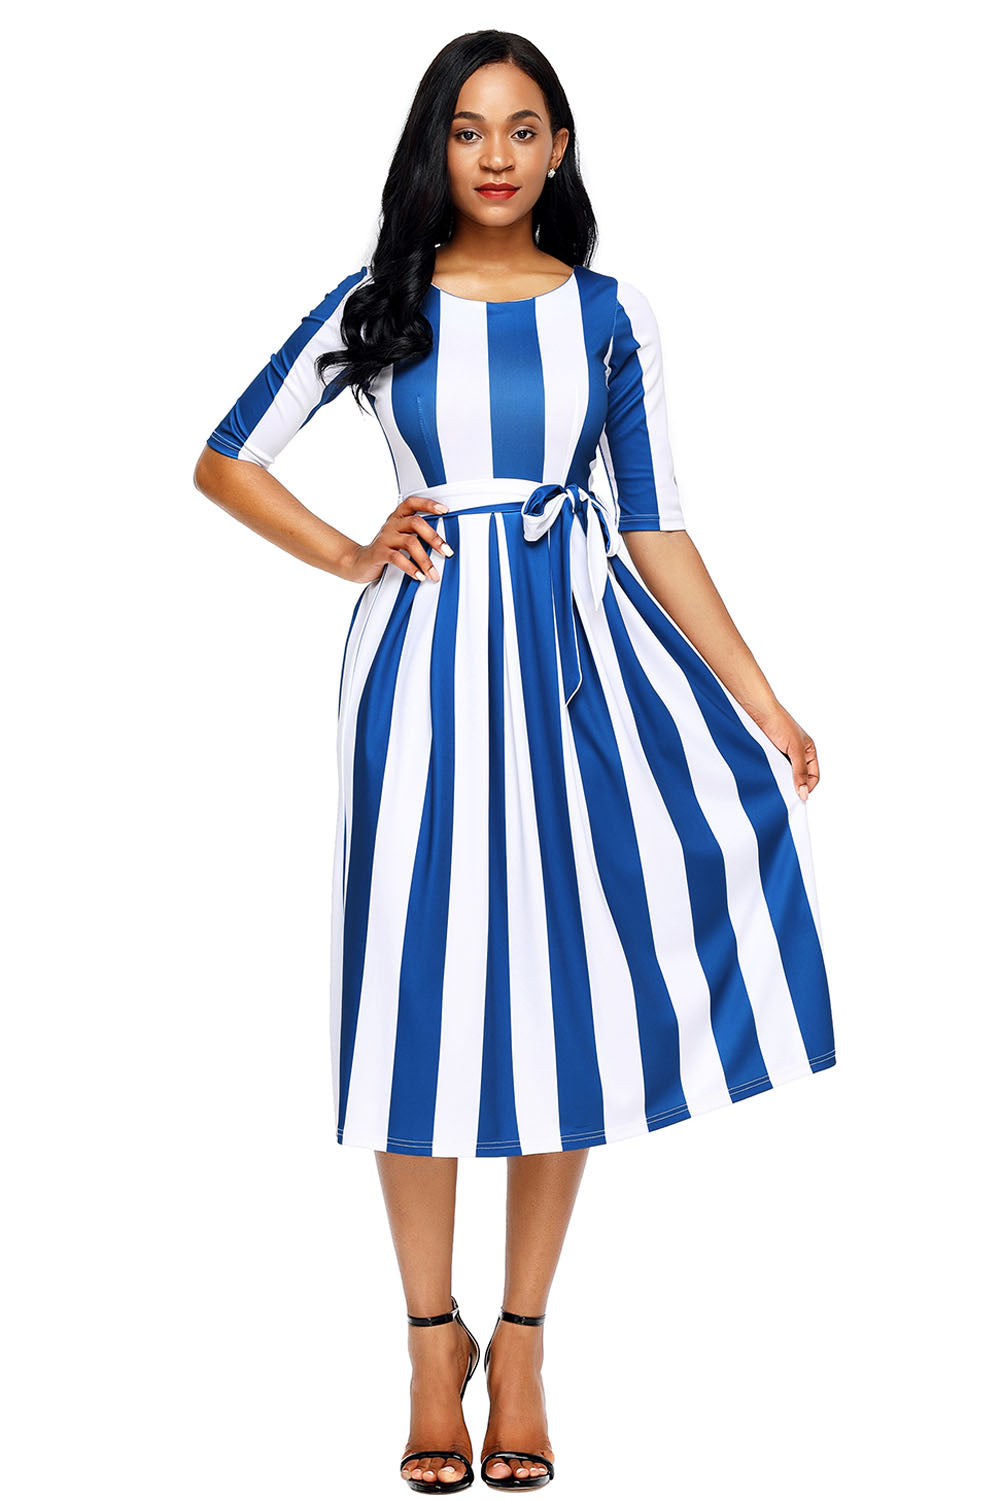 Blue Stripe Print Half Sleeve Belted Dress Maxi Dresses Discount Designer Fashion Clothes Shoes Bags Women Men Kids Children Black Owned Business